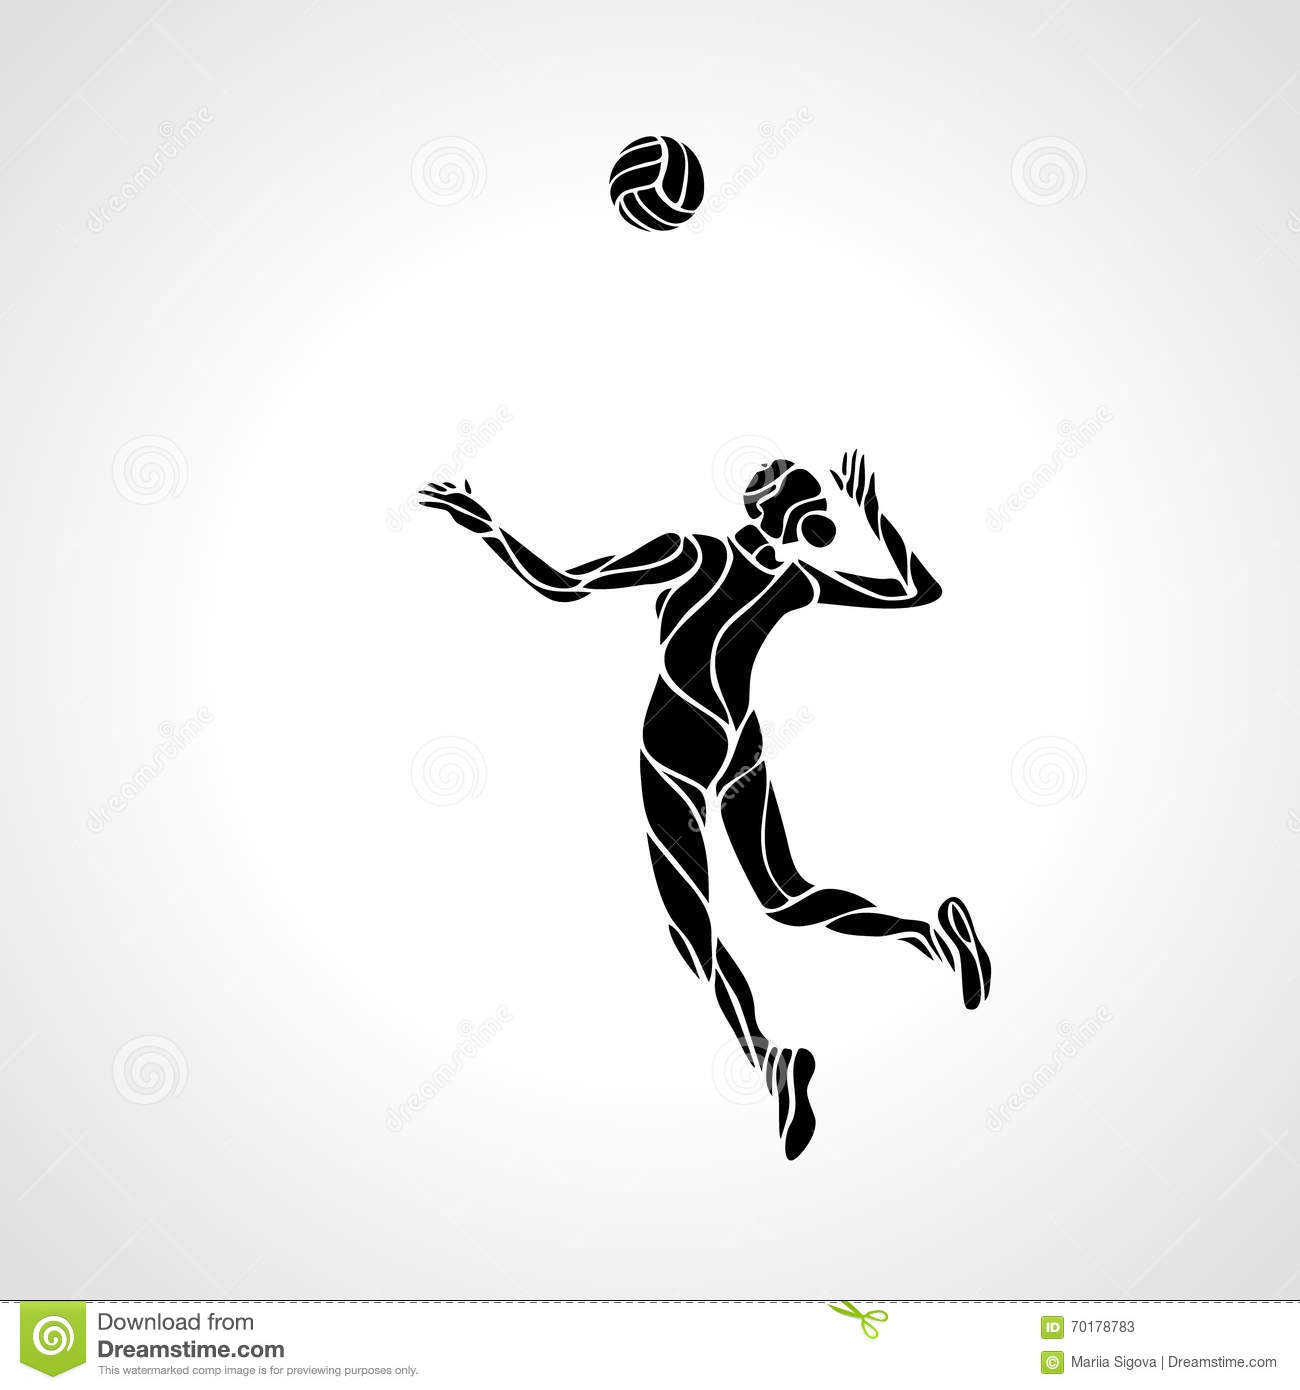 Volleyball player spike silhouette